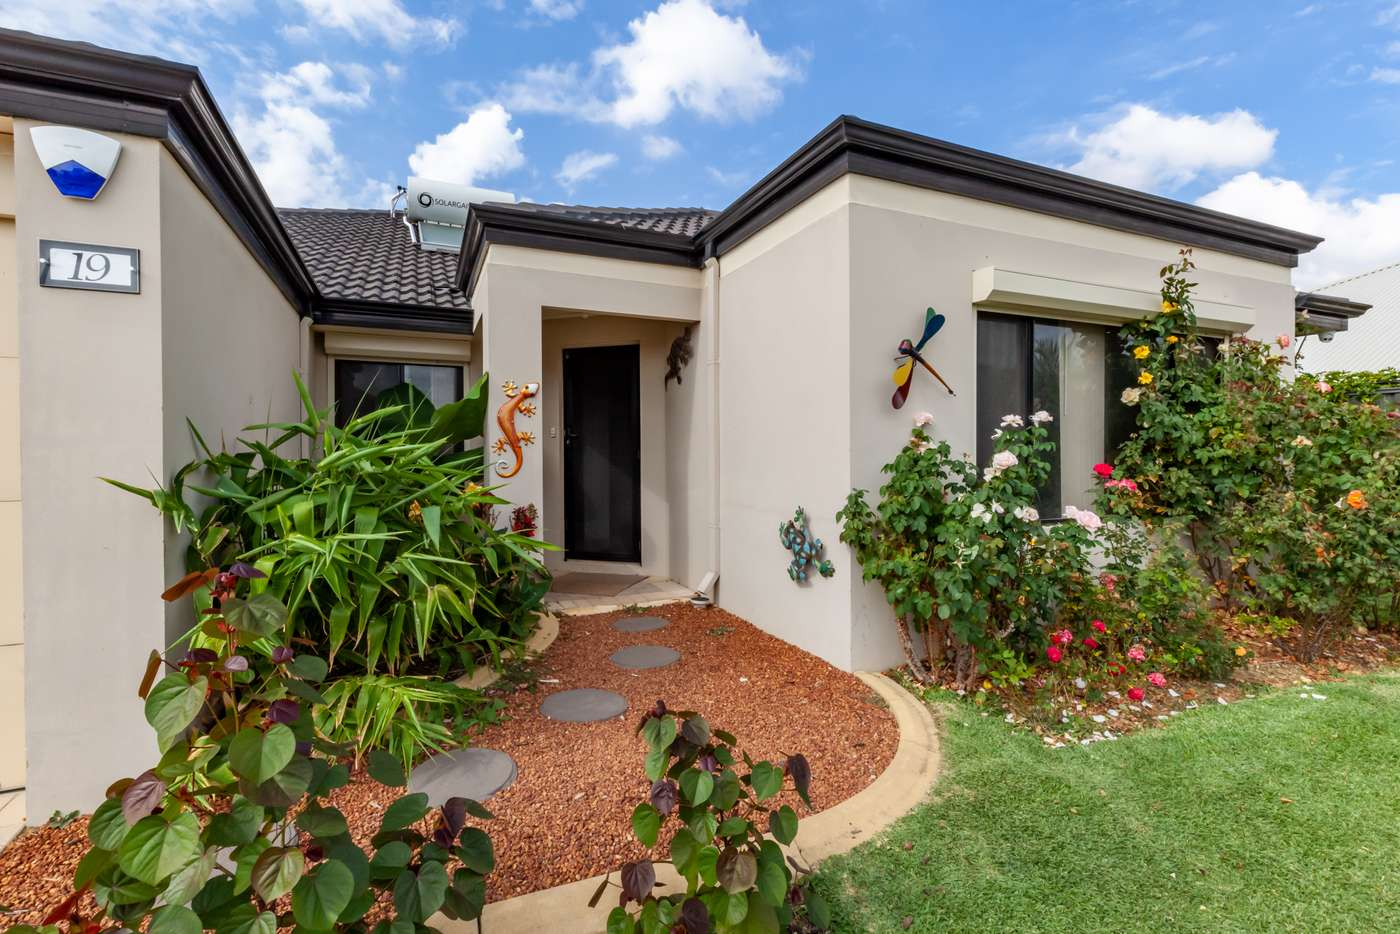 Main view of Homely house listing, 19 Tourmaline Boulevard, Byford WA 6122